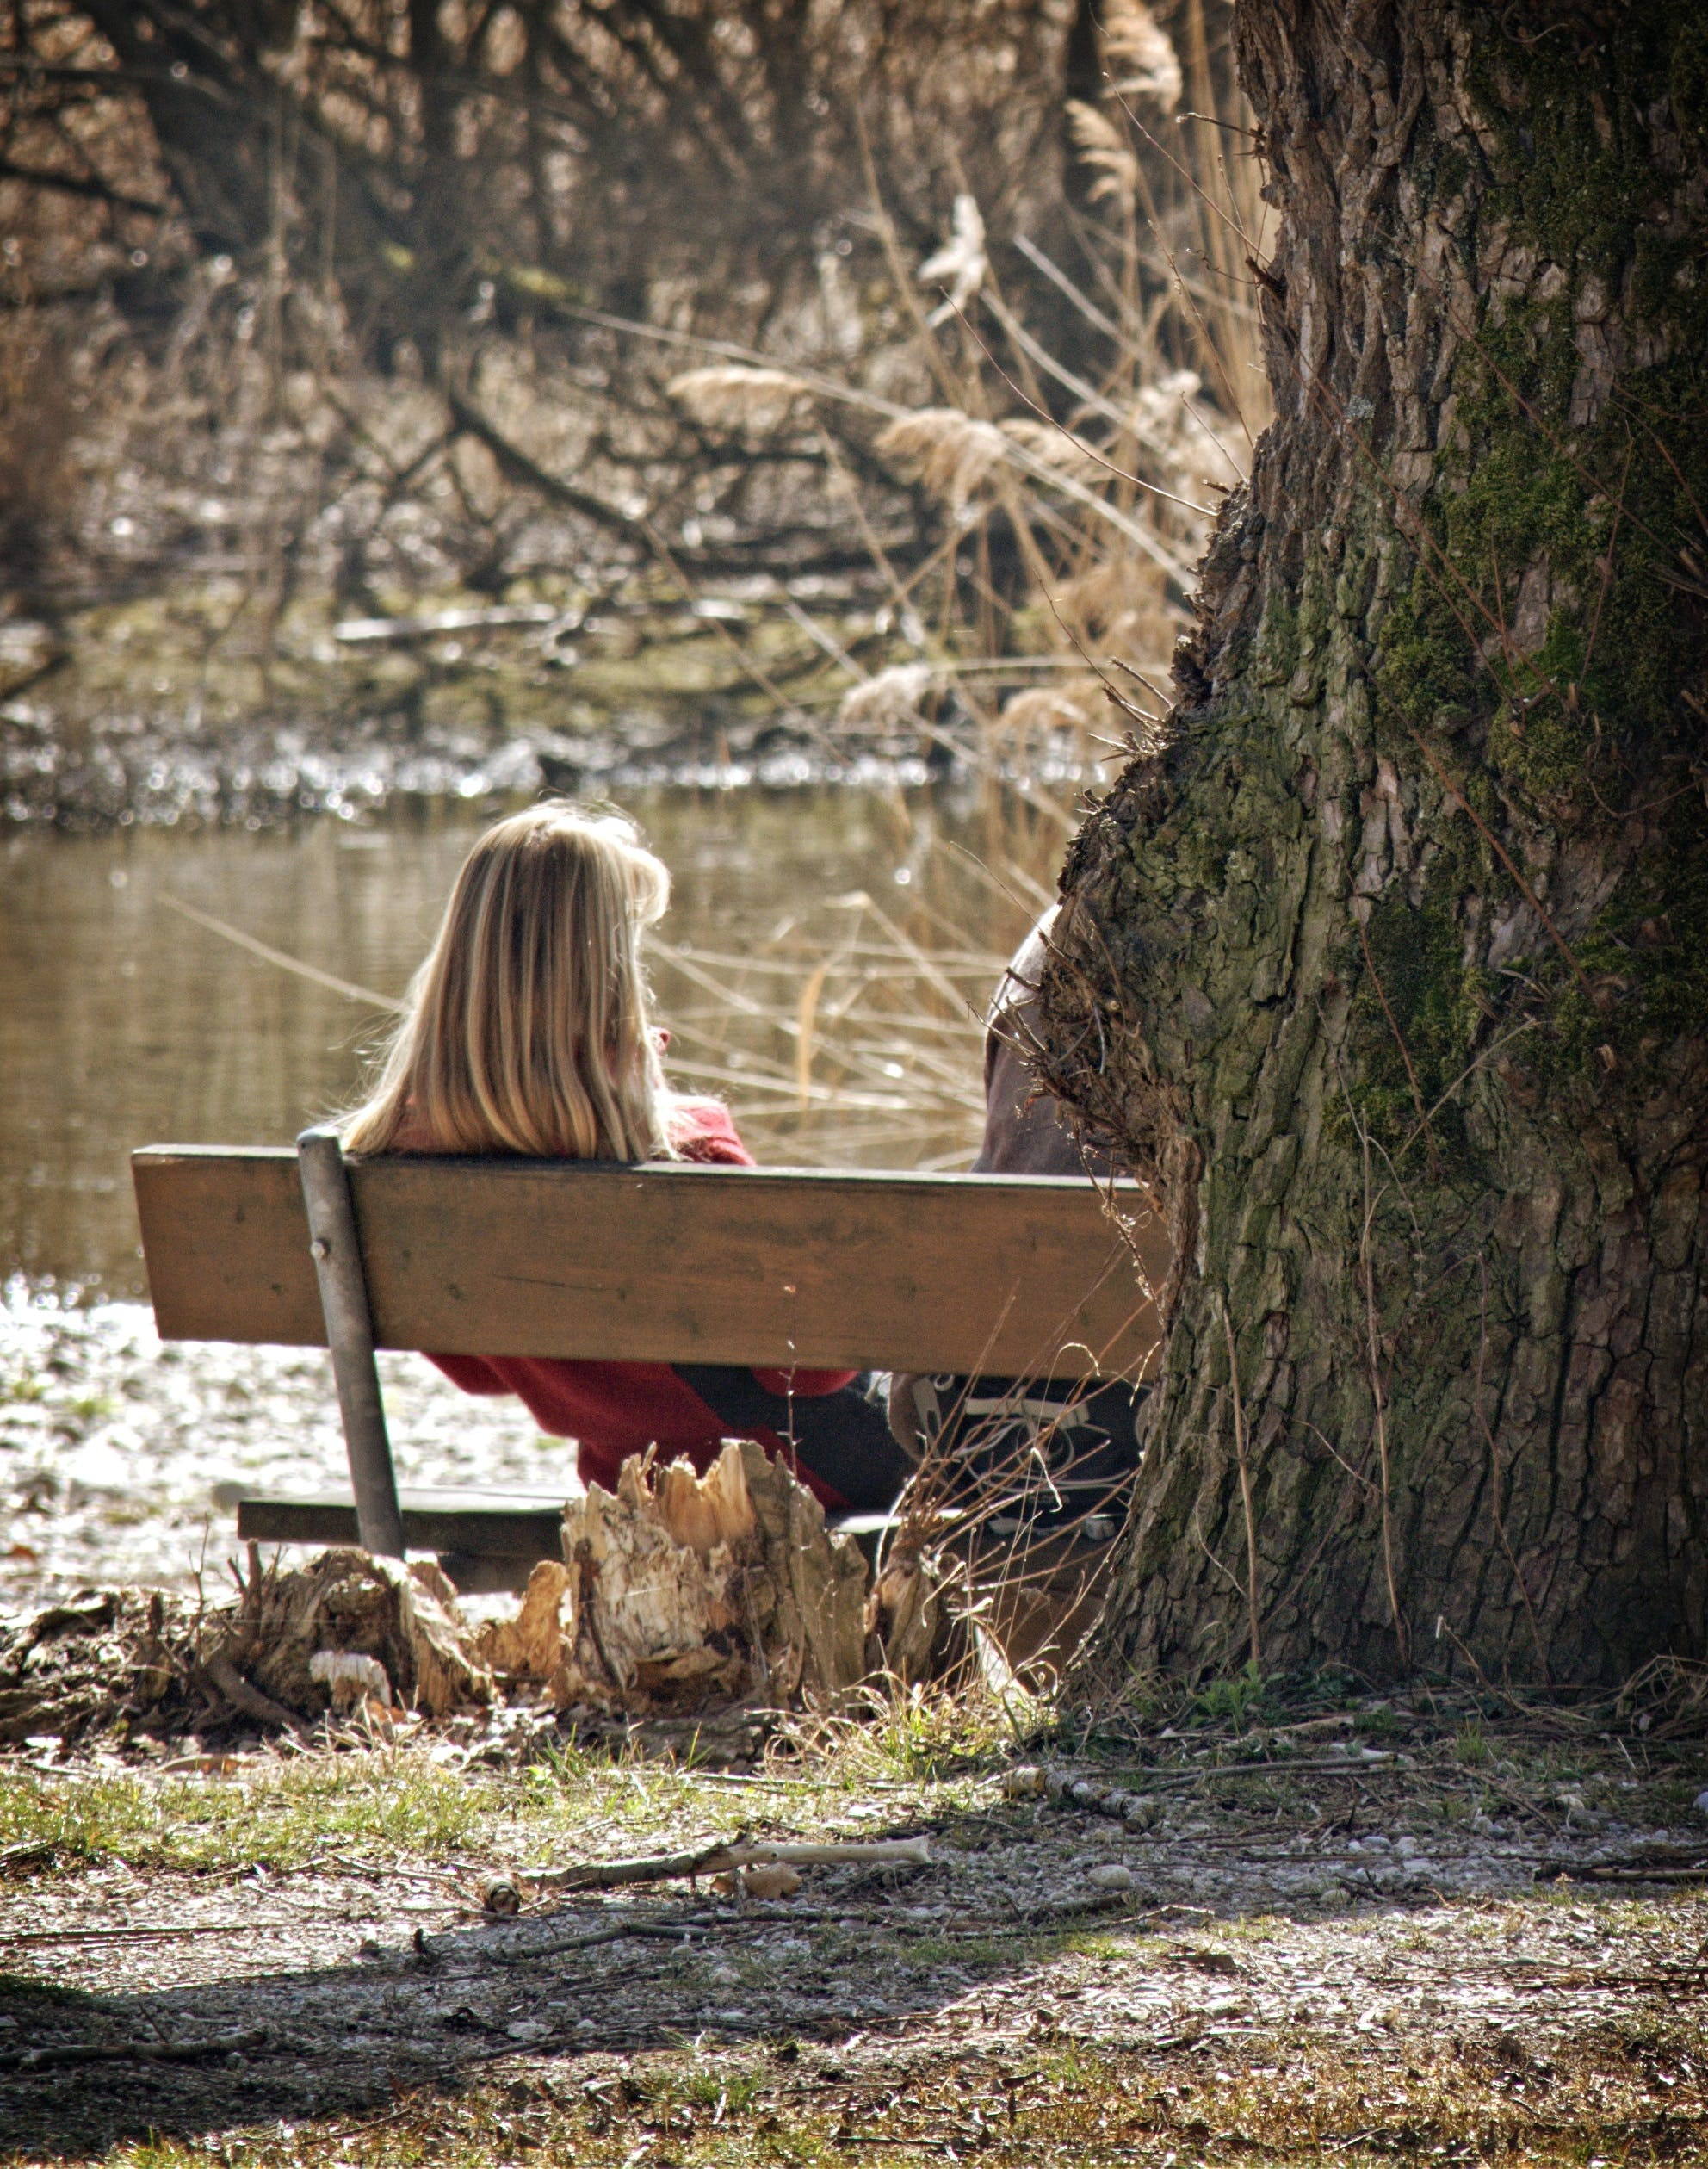 Woman Sitting on Bench Near Tree